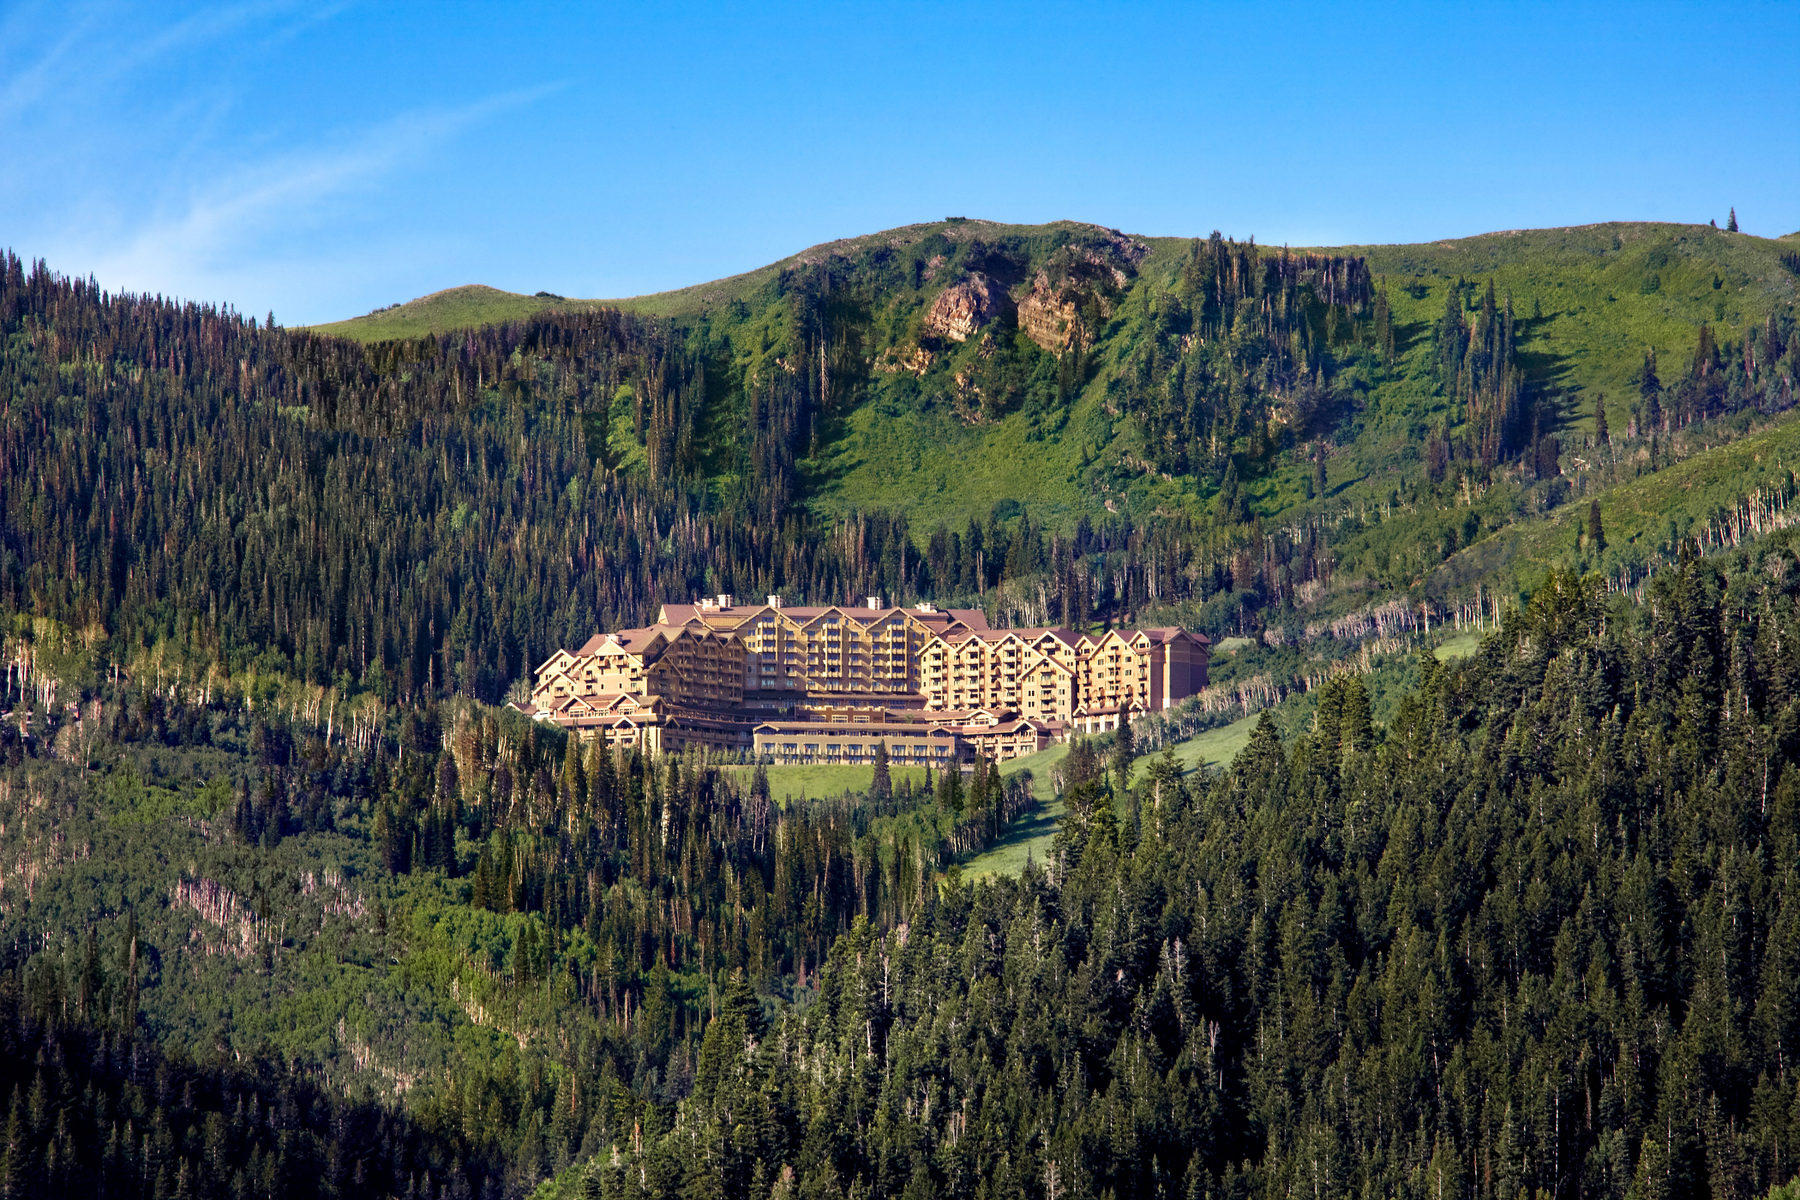 Condominium for Sale at Montage Residences at Deer Valley 9100 Marsac Ave #1043 Park City, Utah 84060 United States